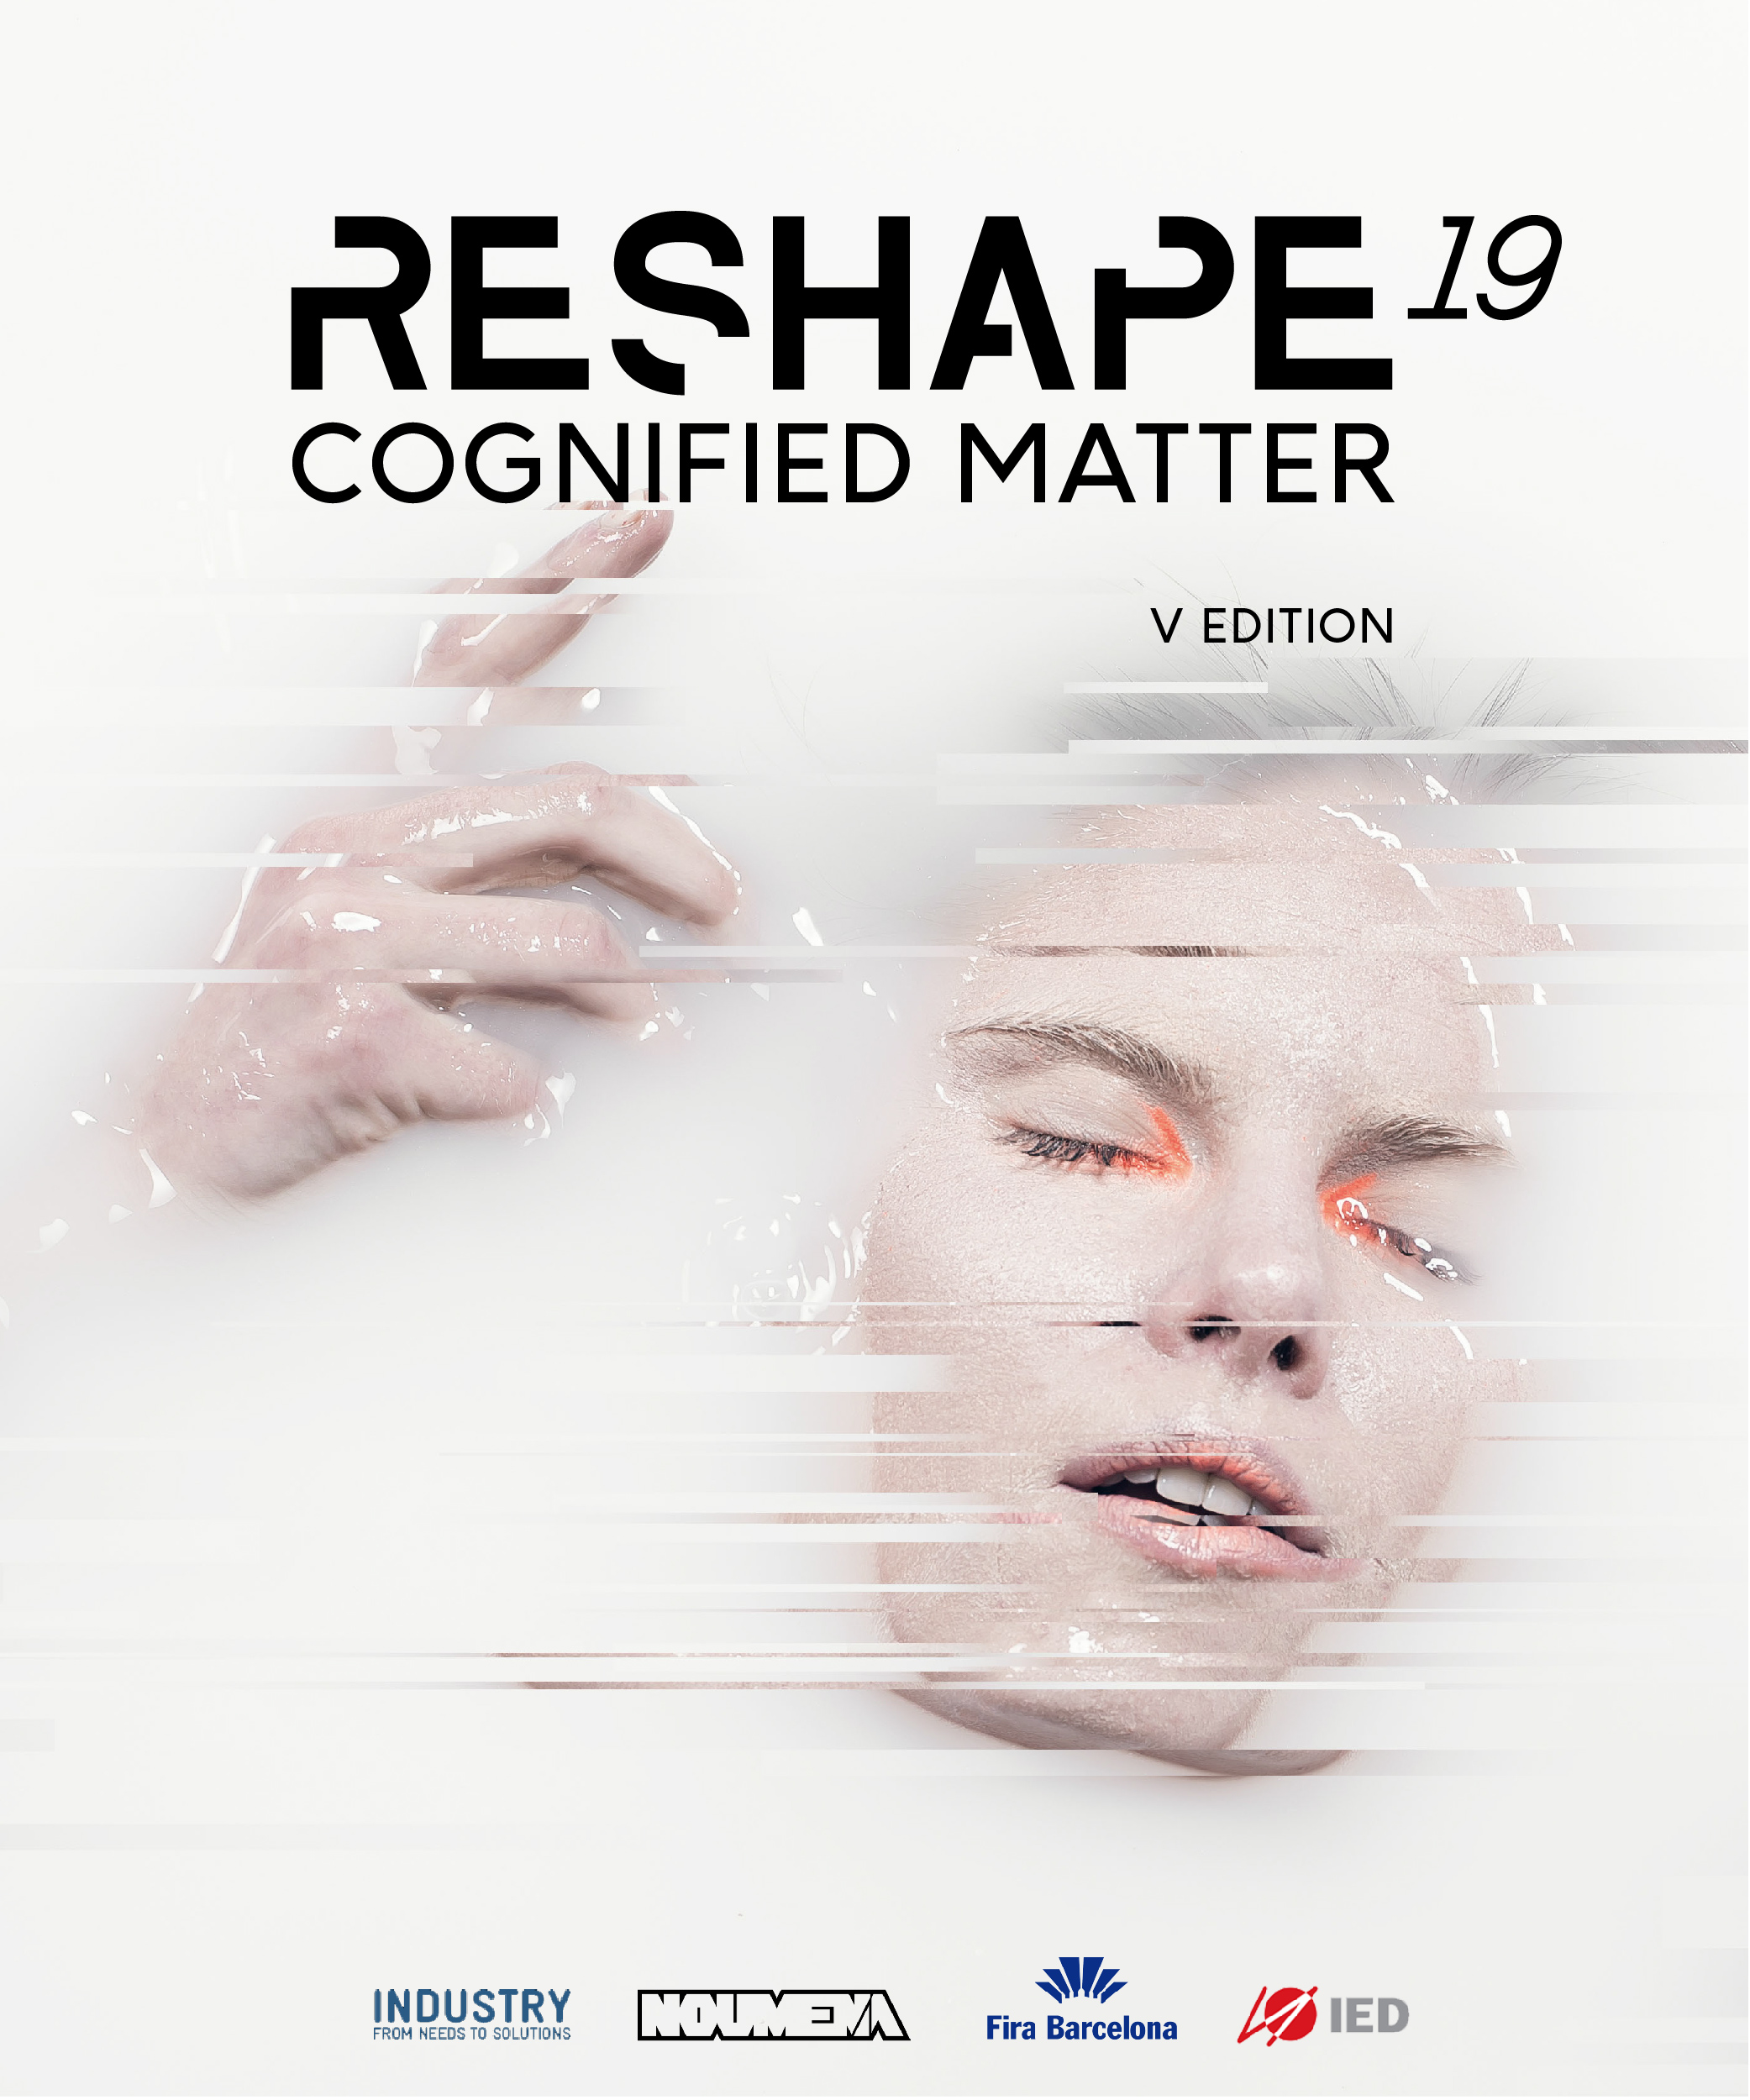 Reshape19   Cognified Matter